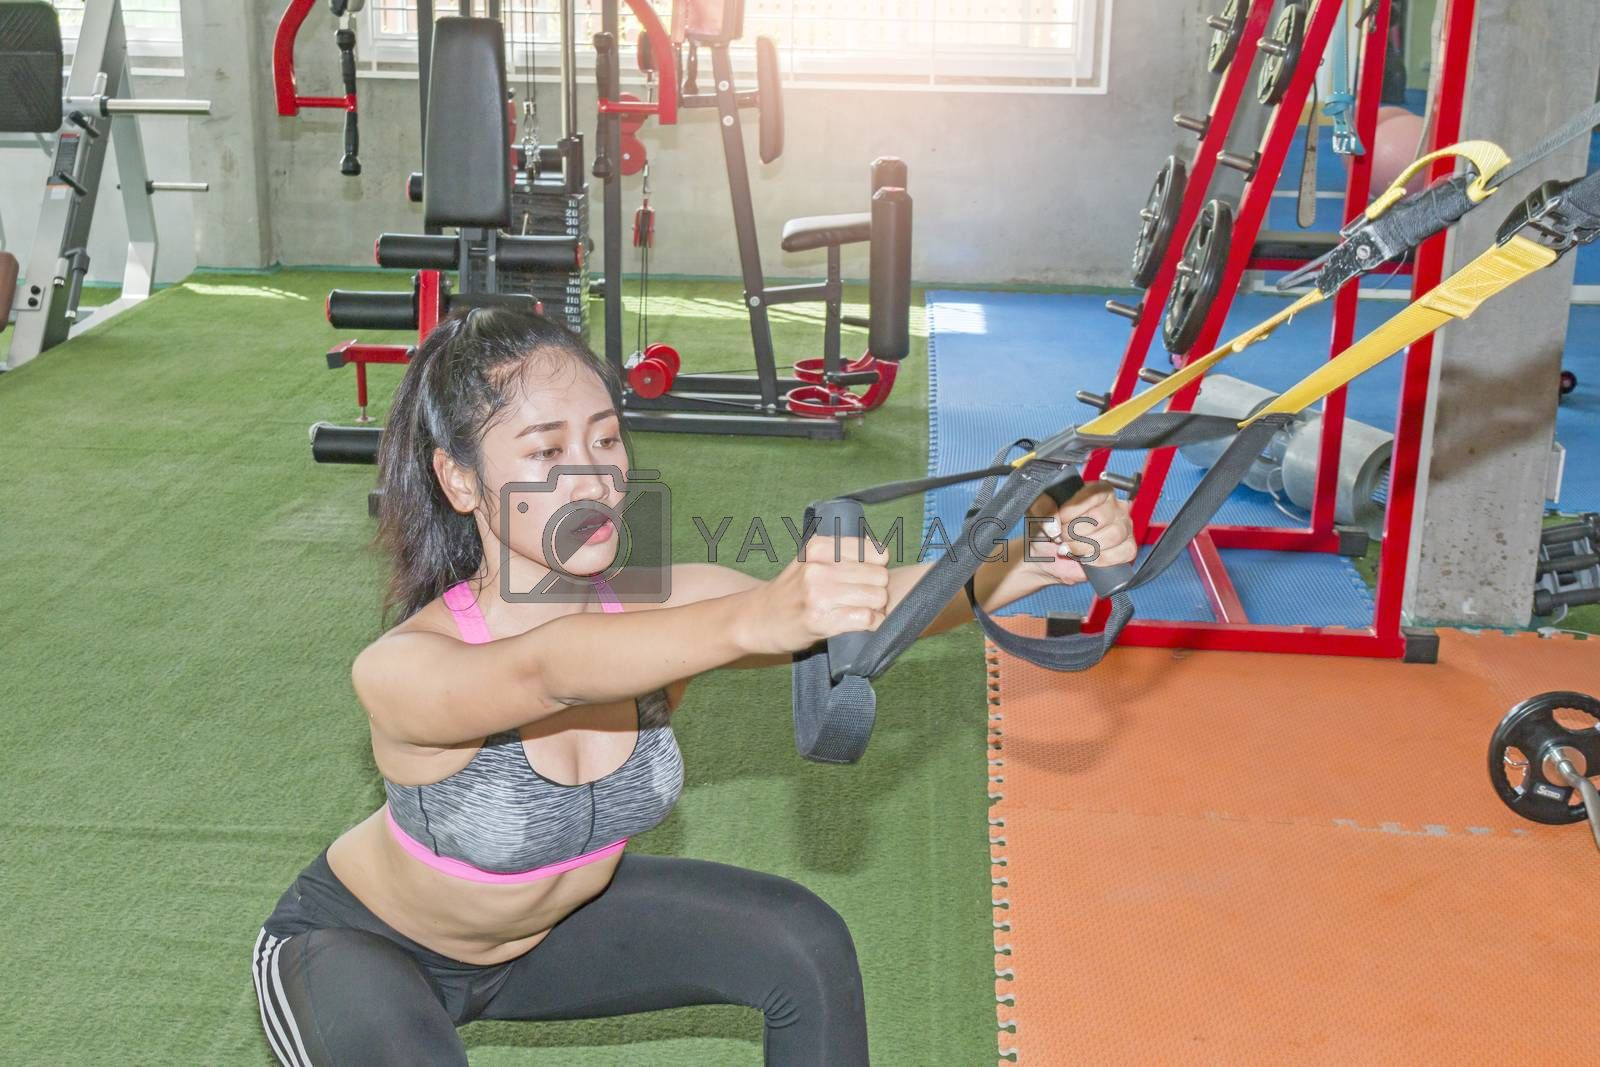 Fitness trx suspension straps training exercises women , working with own weith at gym